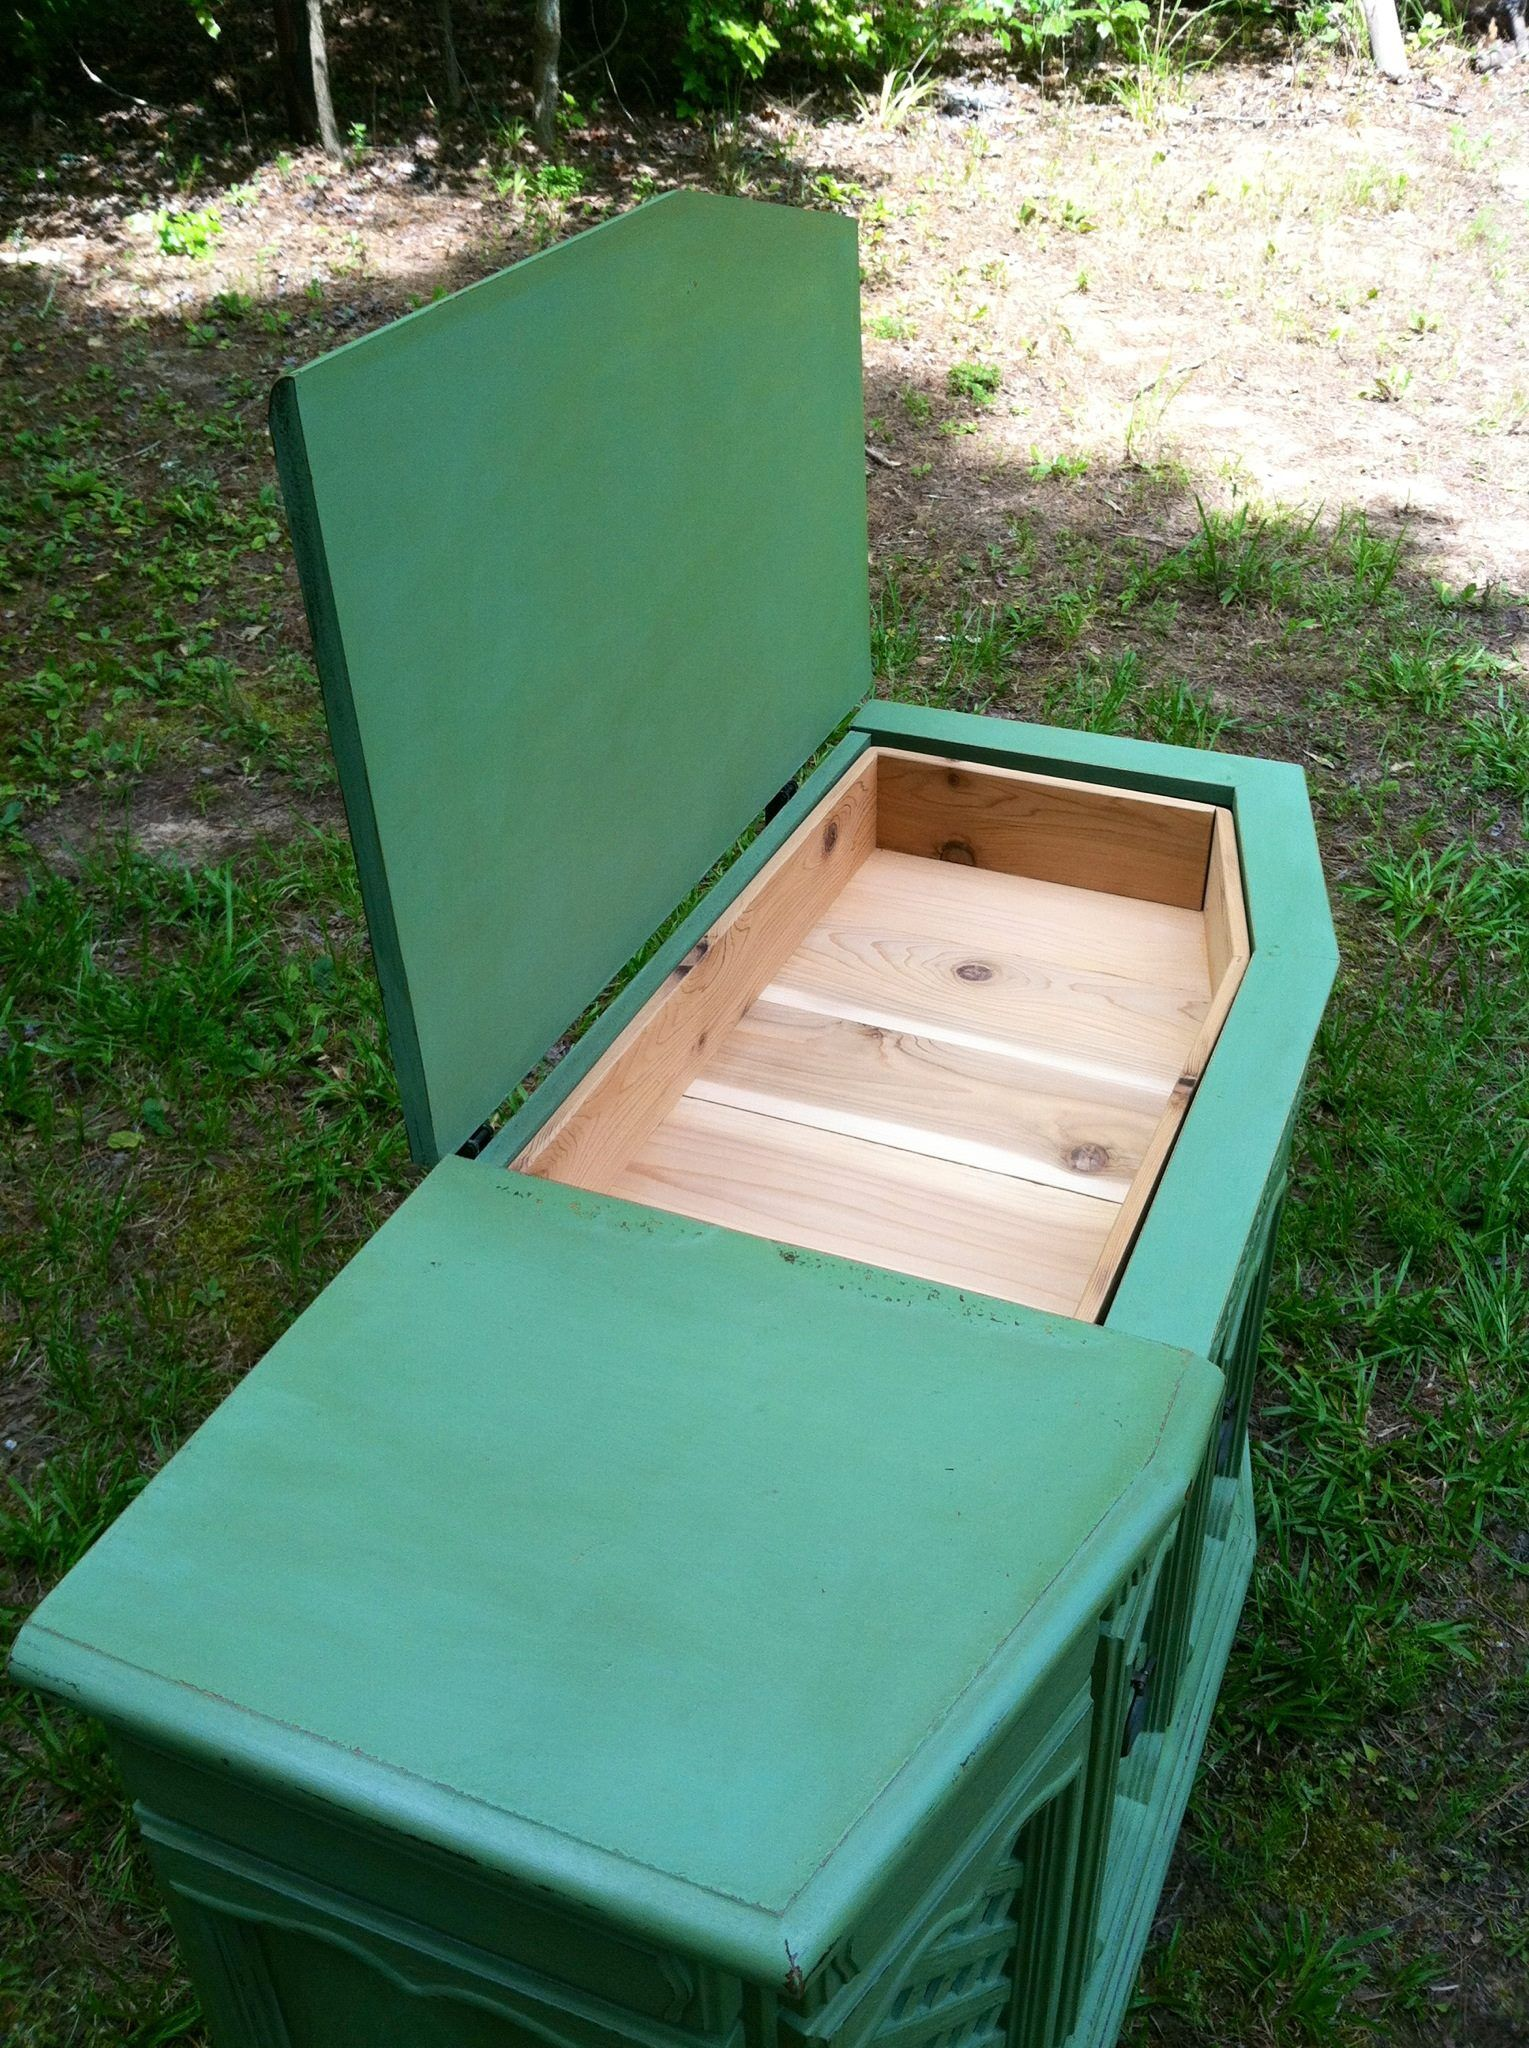 Repurposed vintage console stereo cabinet converted to cedar chest ...